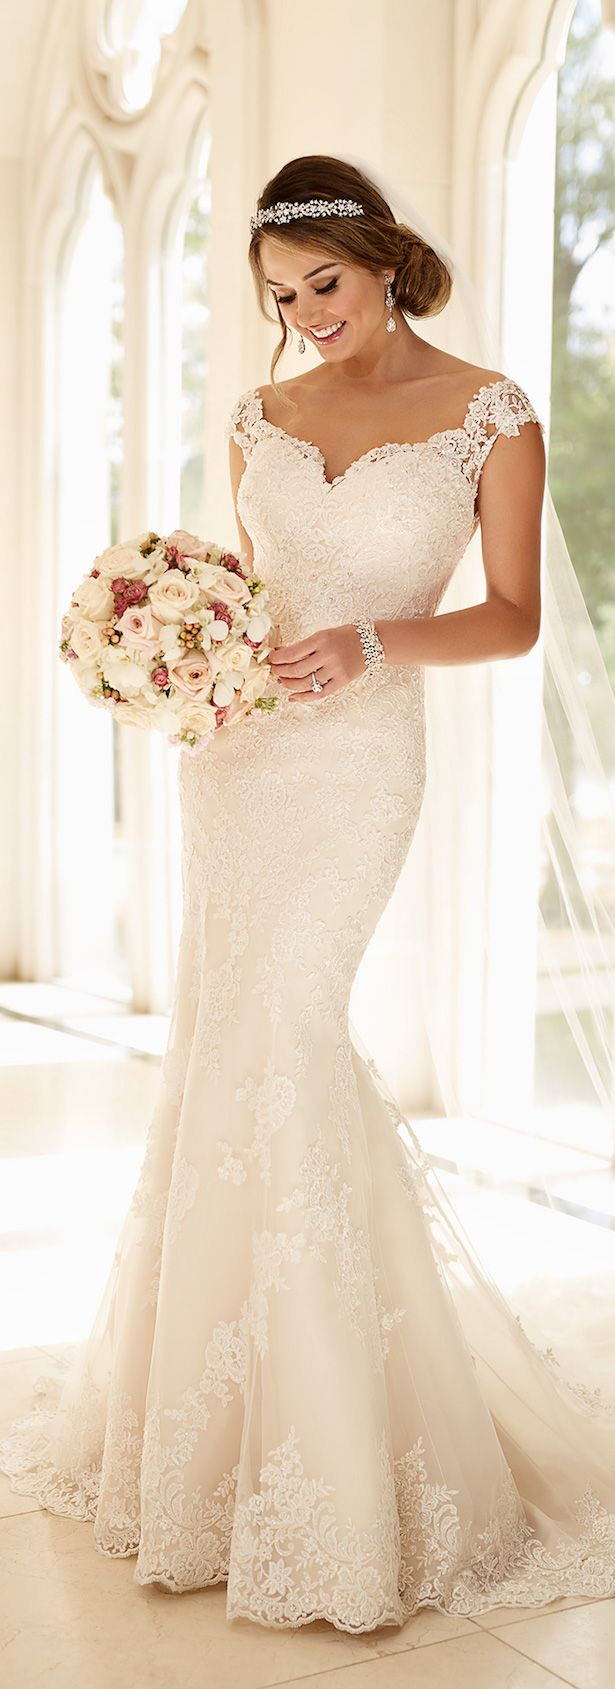 Best 25 Bridal dresses ideas only on Pinterest Princess wedding